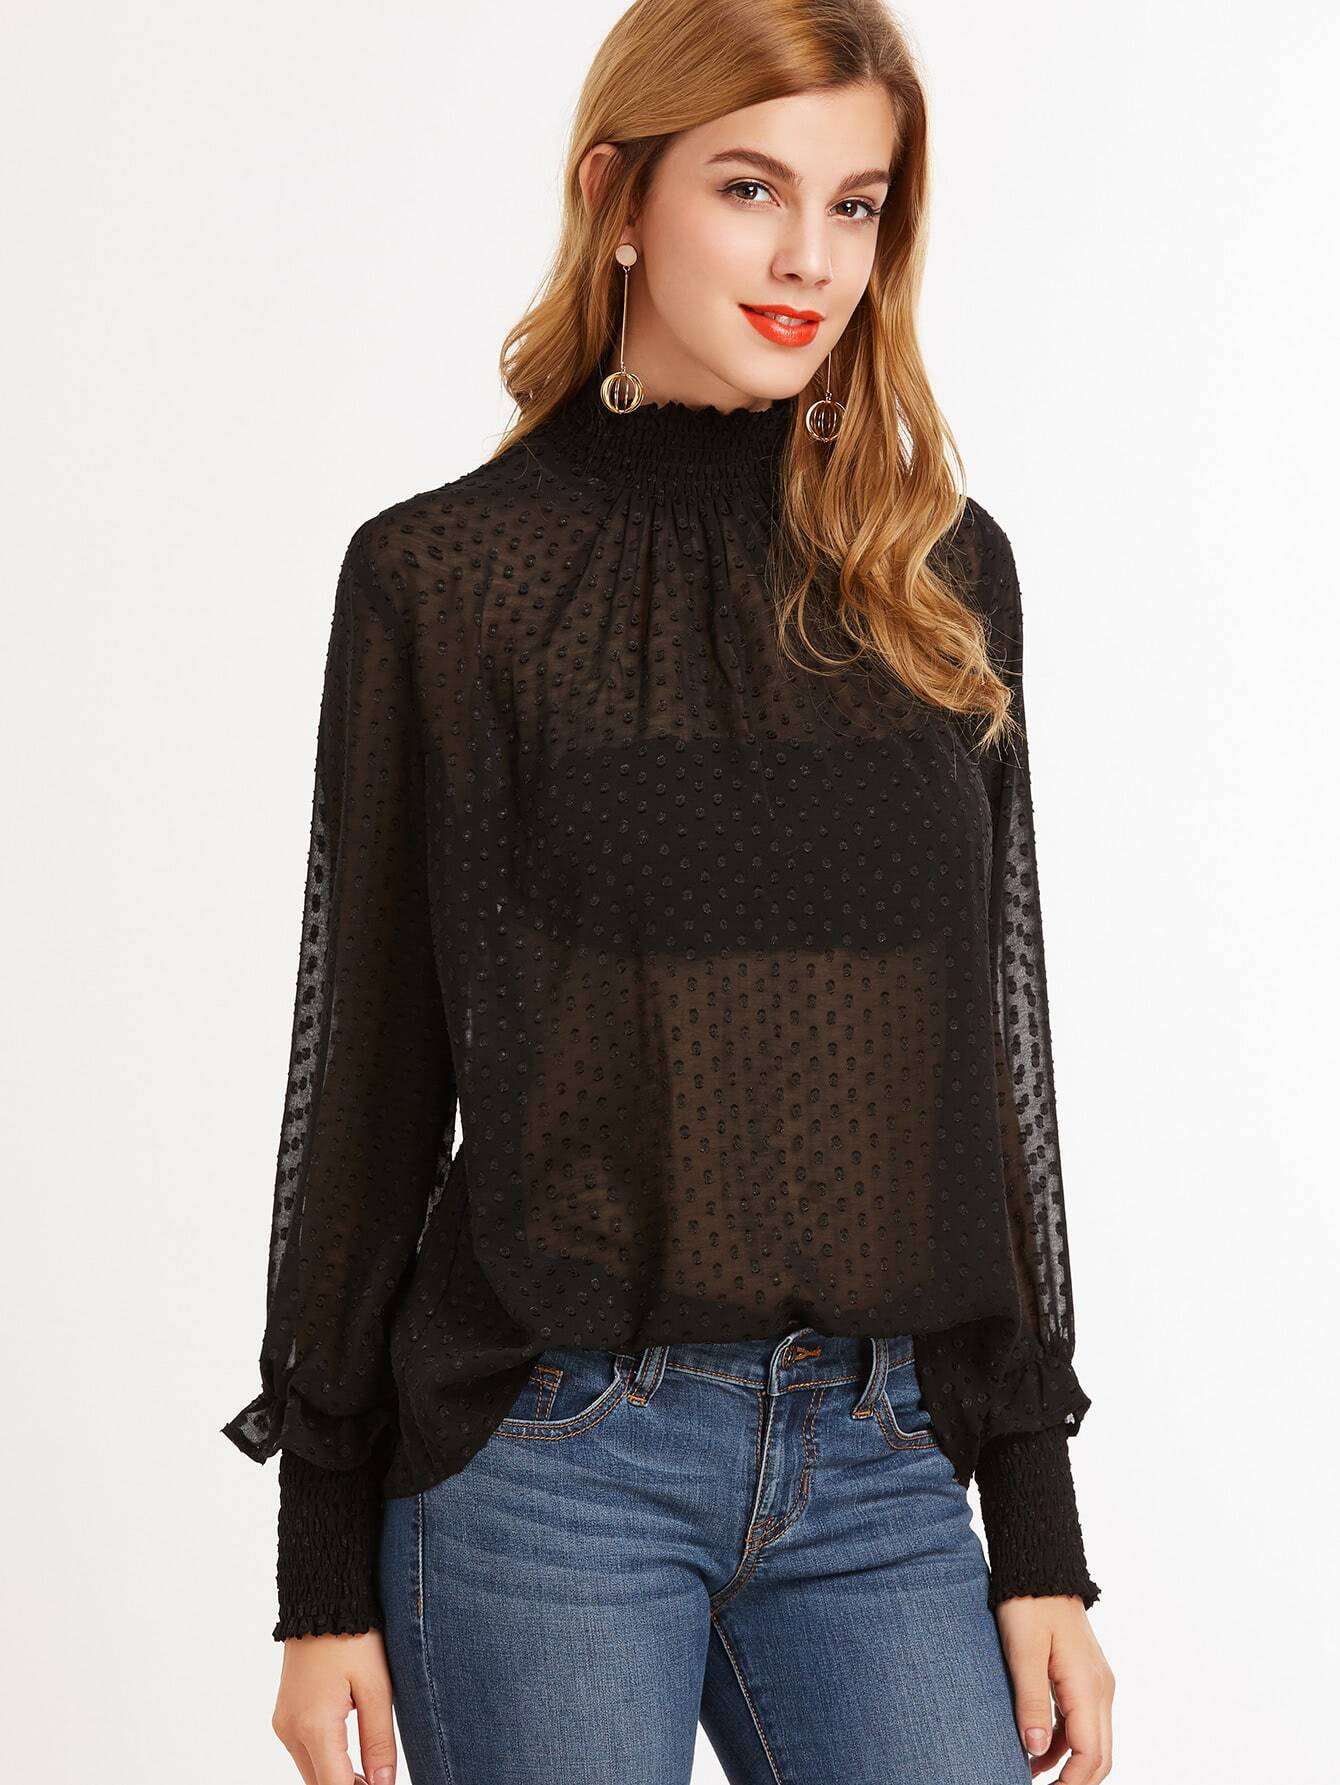 Sheer Dotted Blouse With Smocked Detail sheer dotted blouse with smocked detail